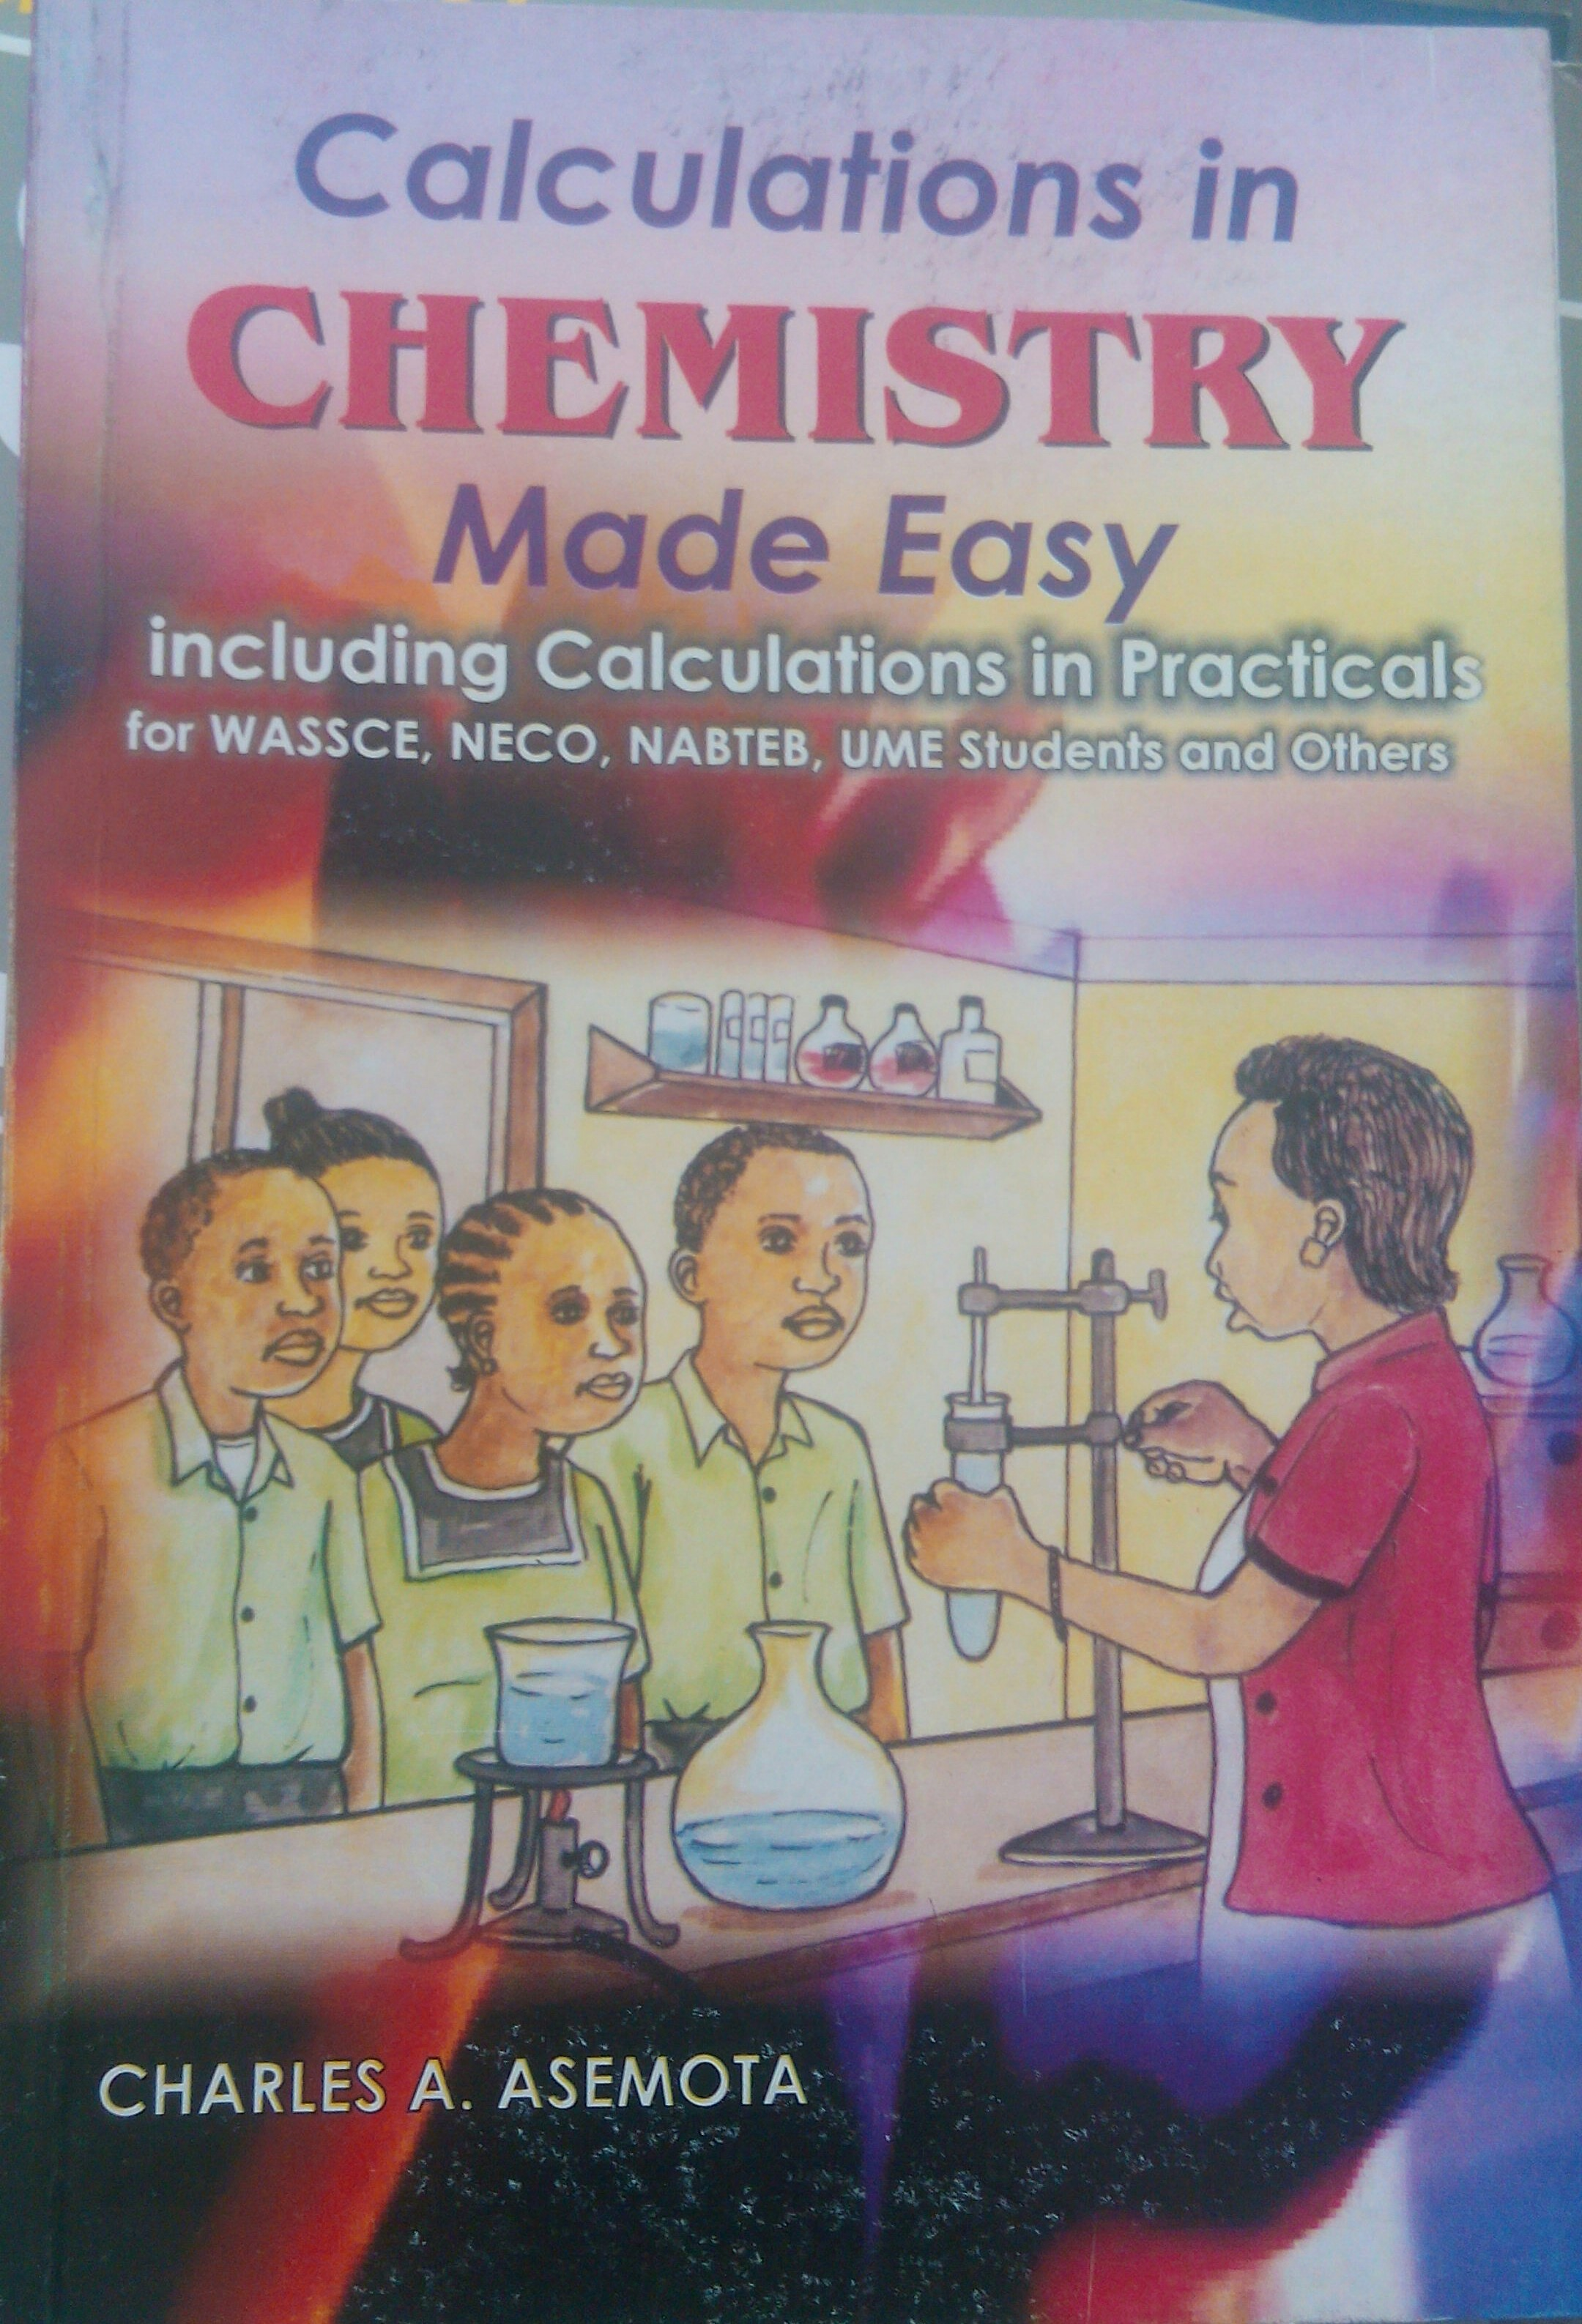 Calculations in Chemistry Made Easy